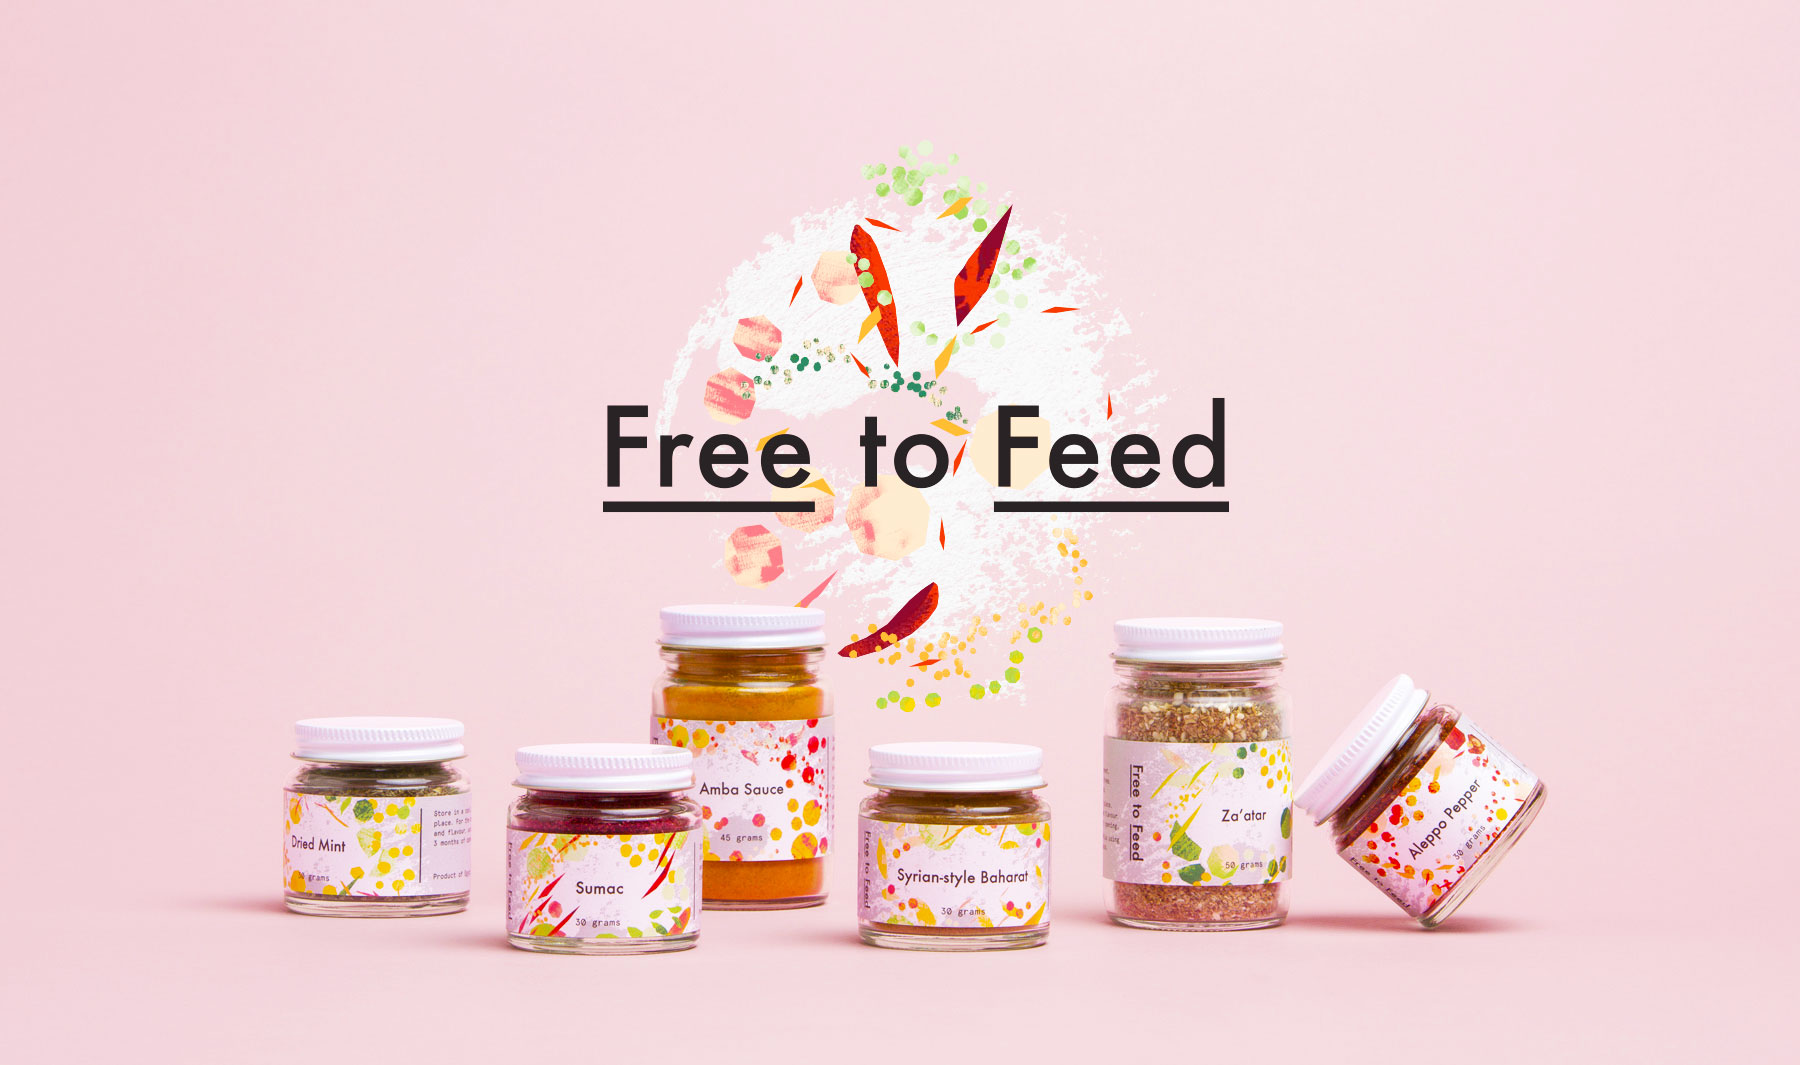 Packaging spices and logo design for Free to Feed 1